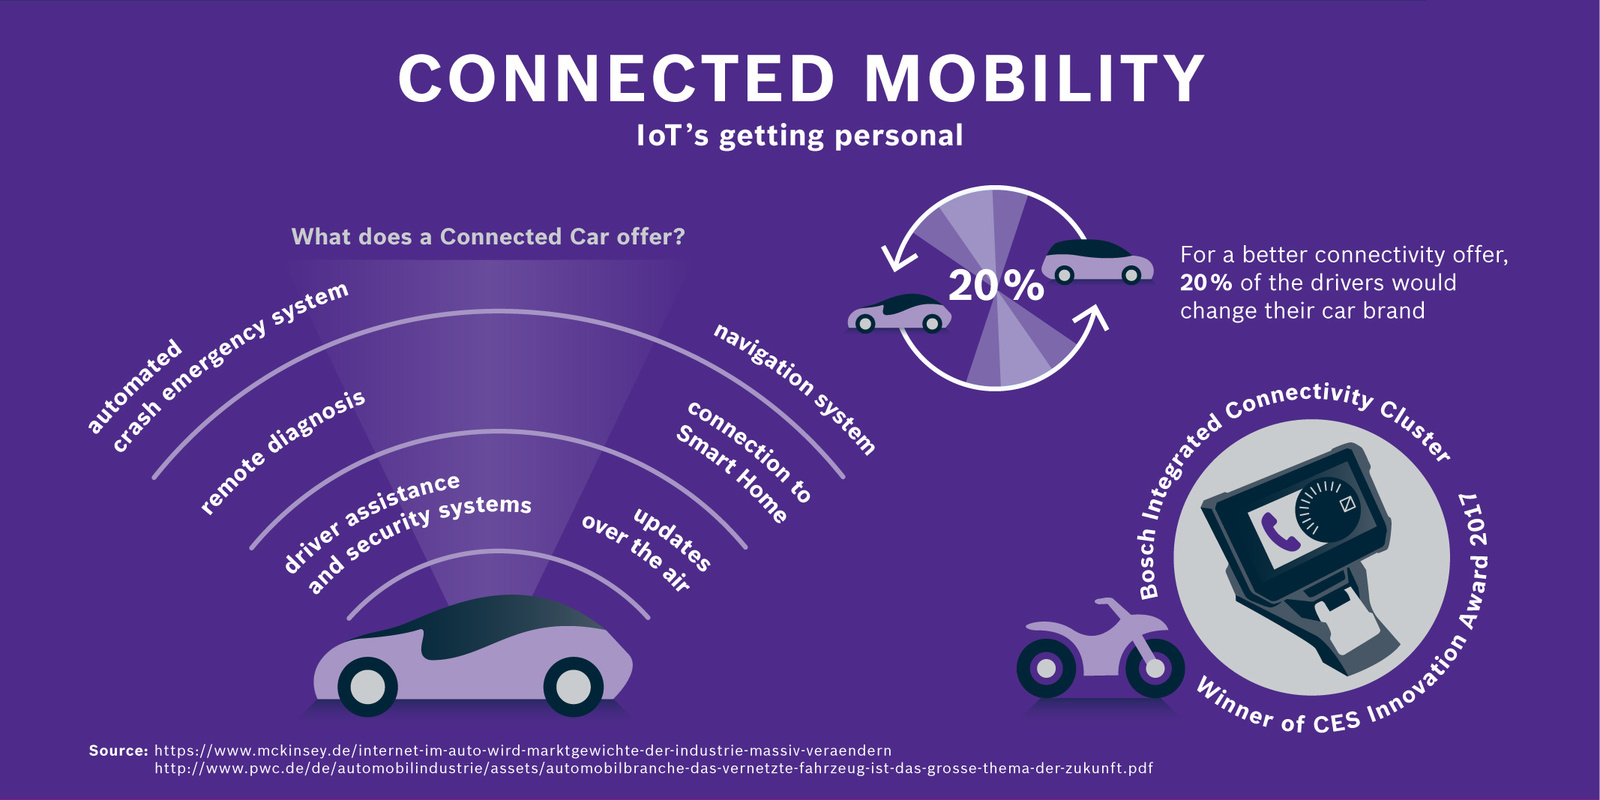 What does a Connected Car offer?